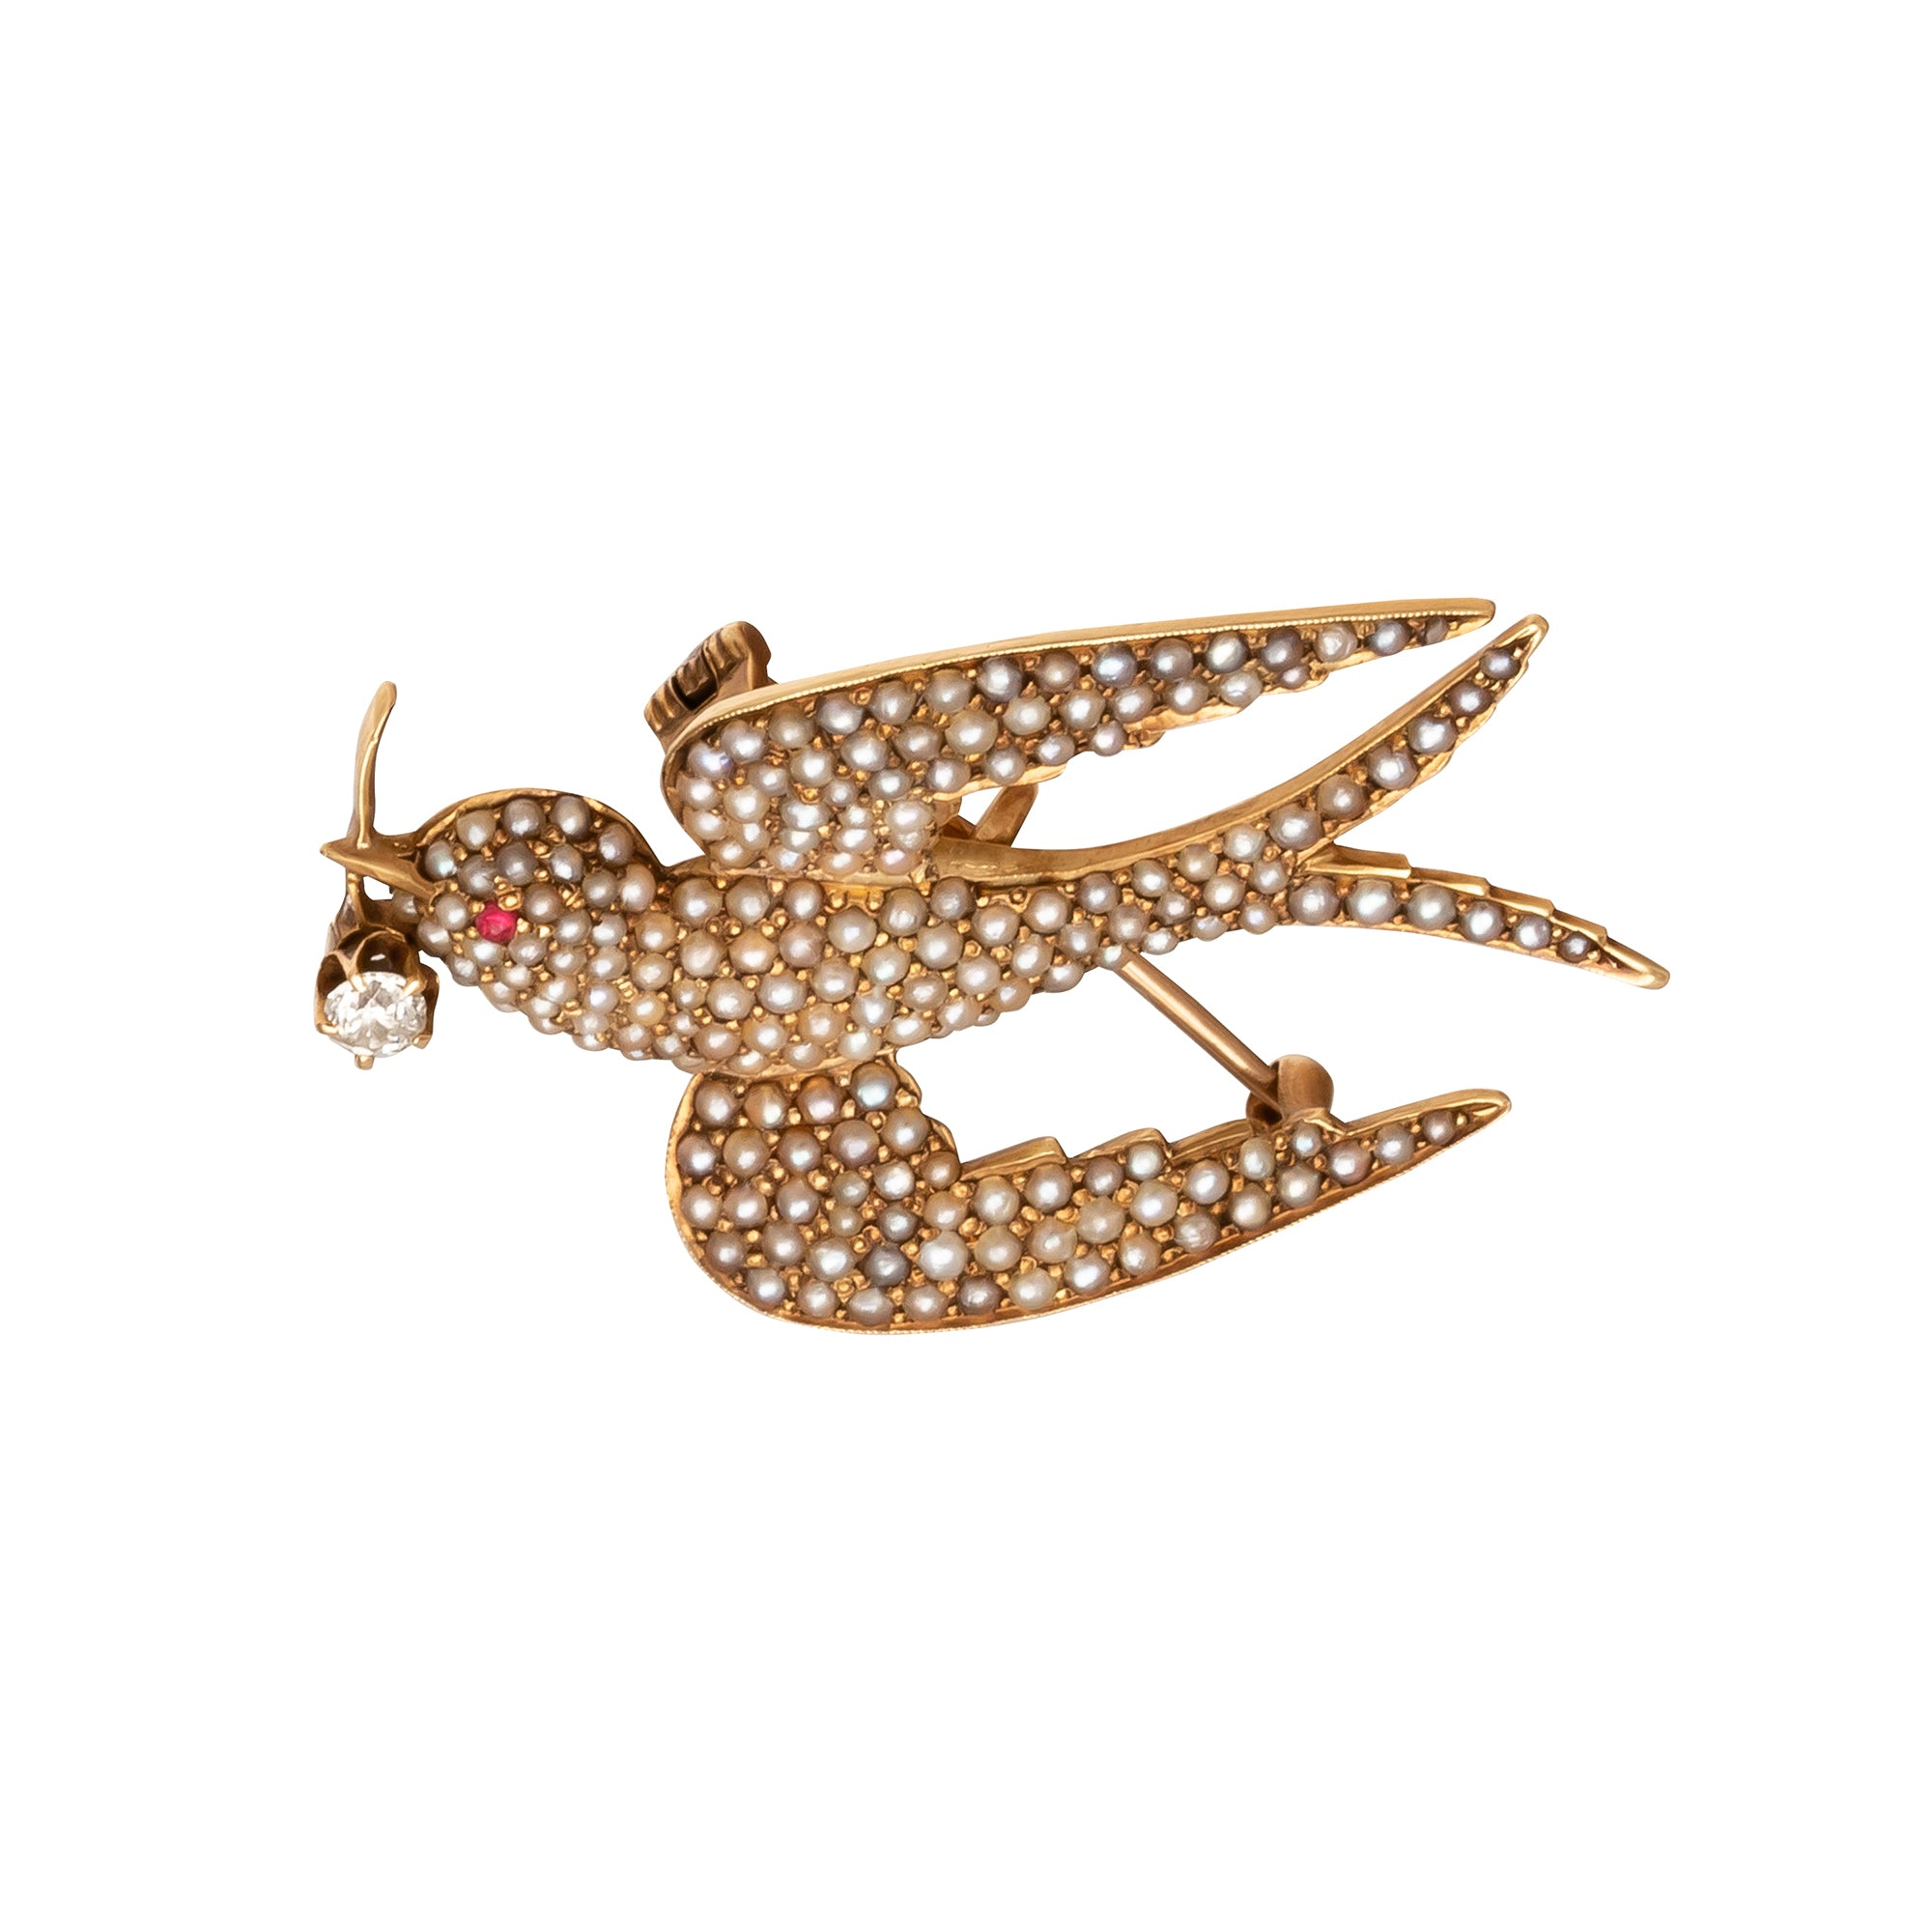 Victorian Swallow Brooch - Antique & Vintage Jewelry - Charms & Pendants | Broken English Jewelry